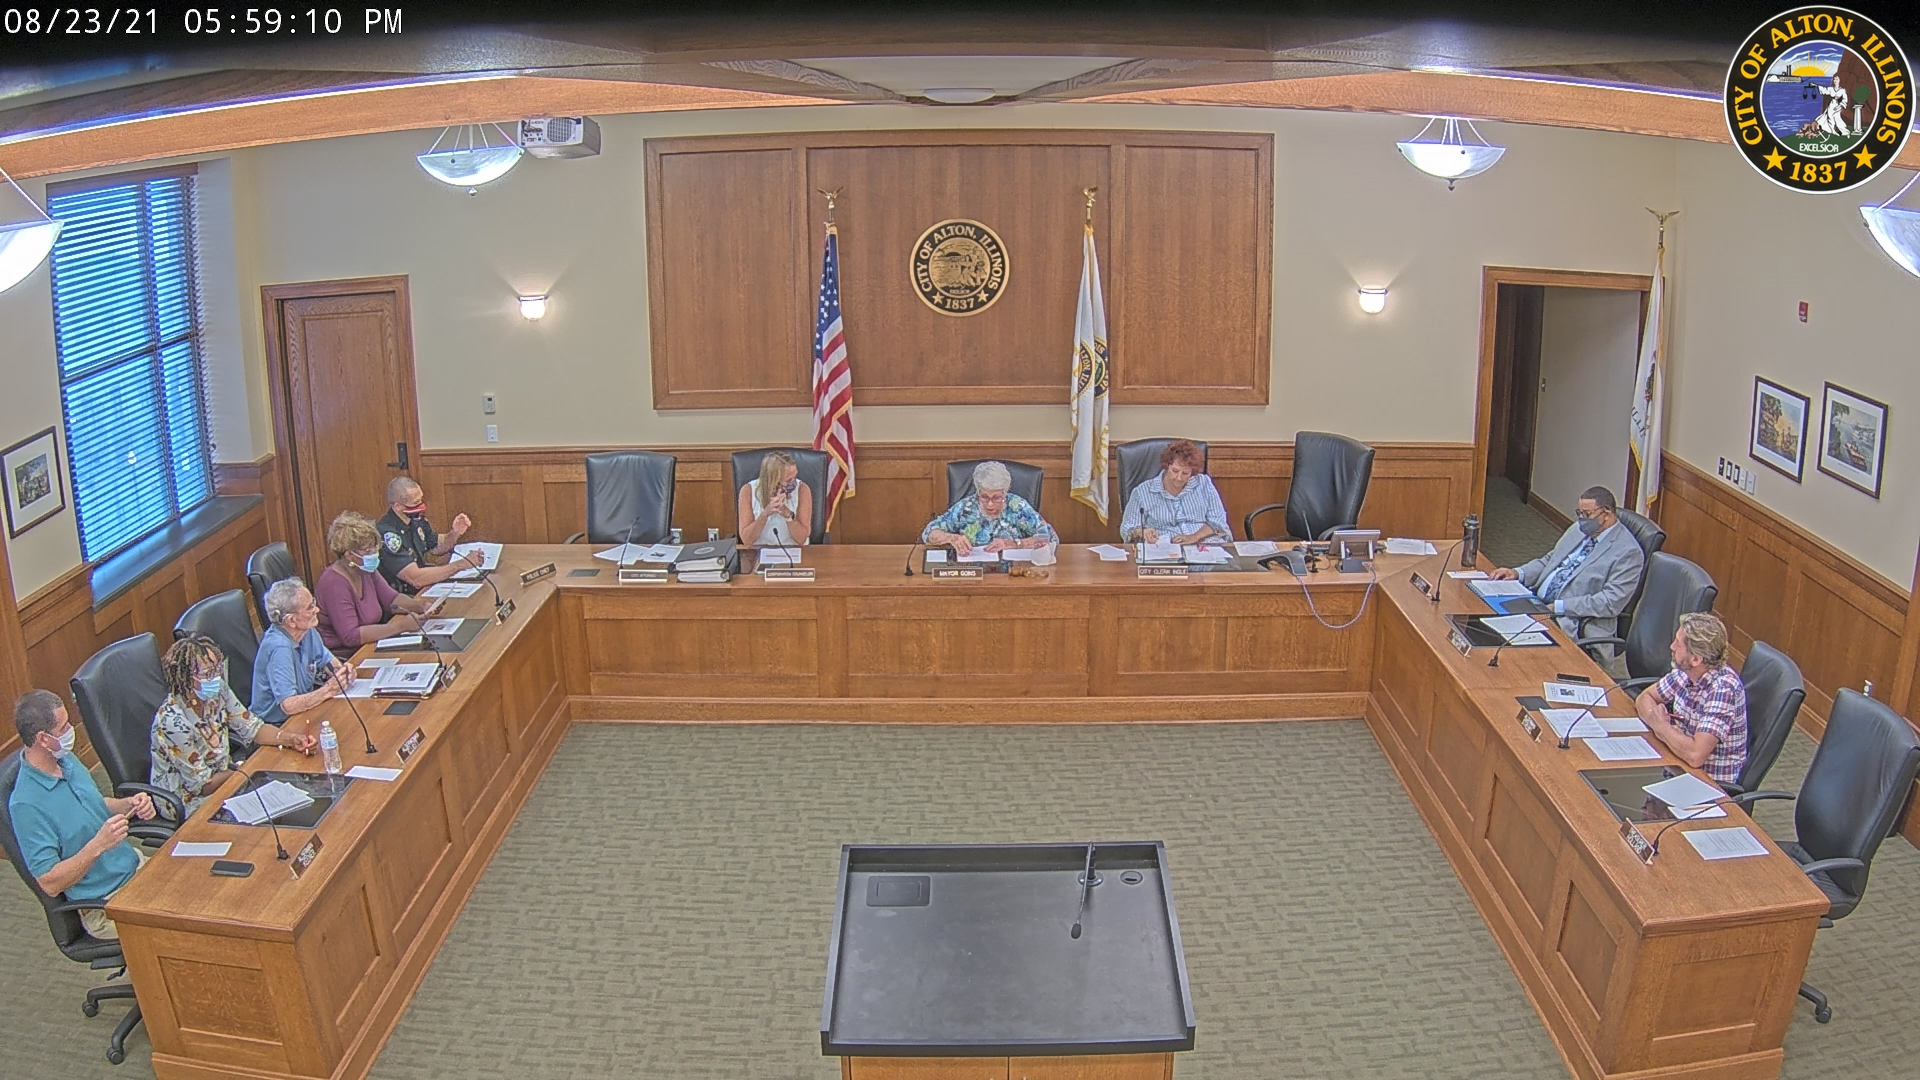 City of Alton - Committee of the Whole Meeting August 23rd, 2021